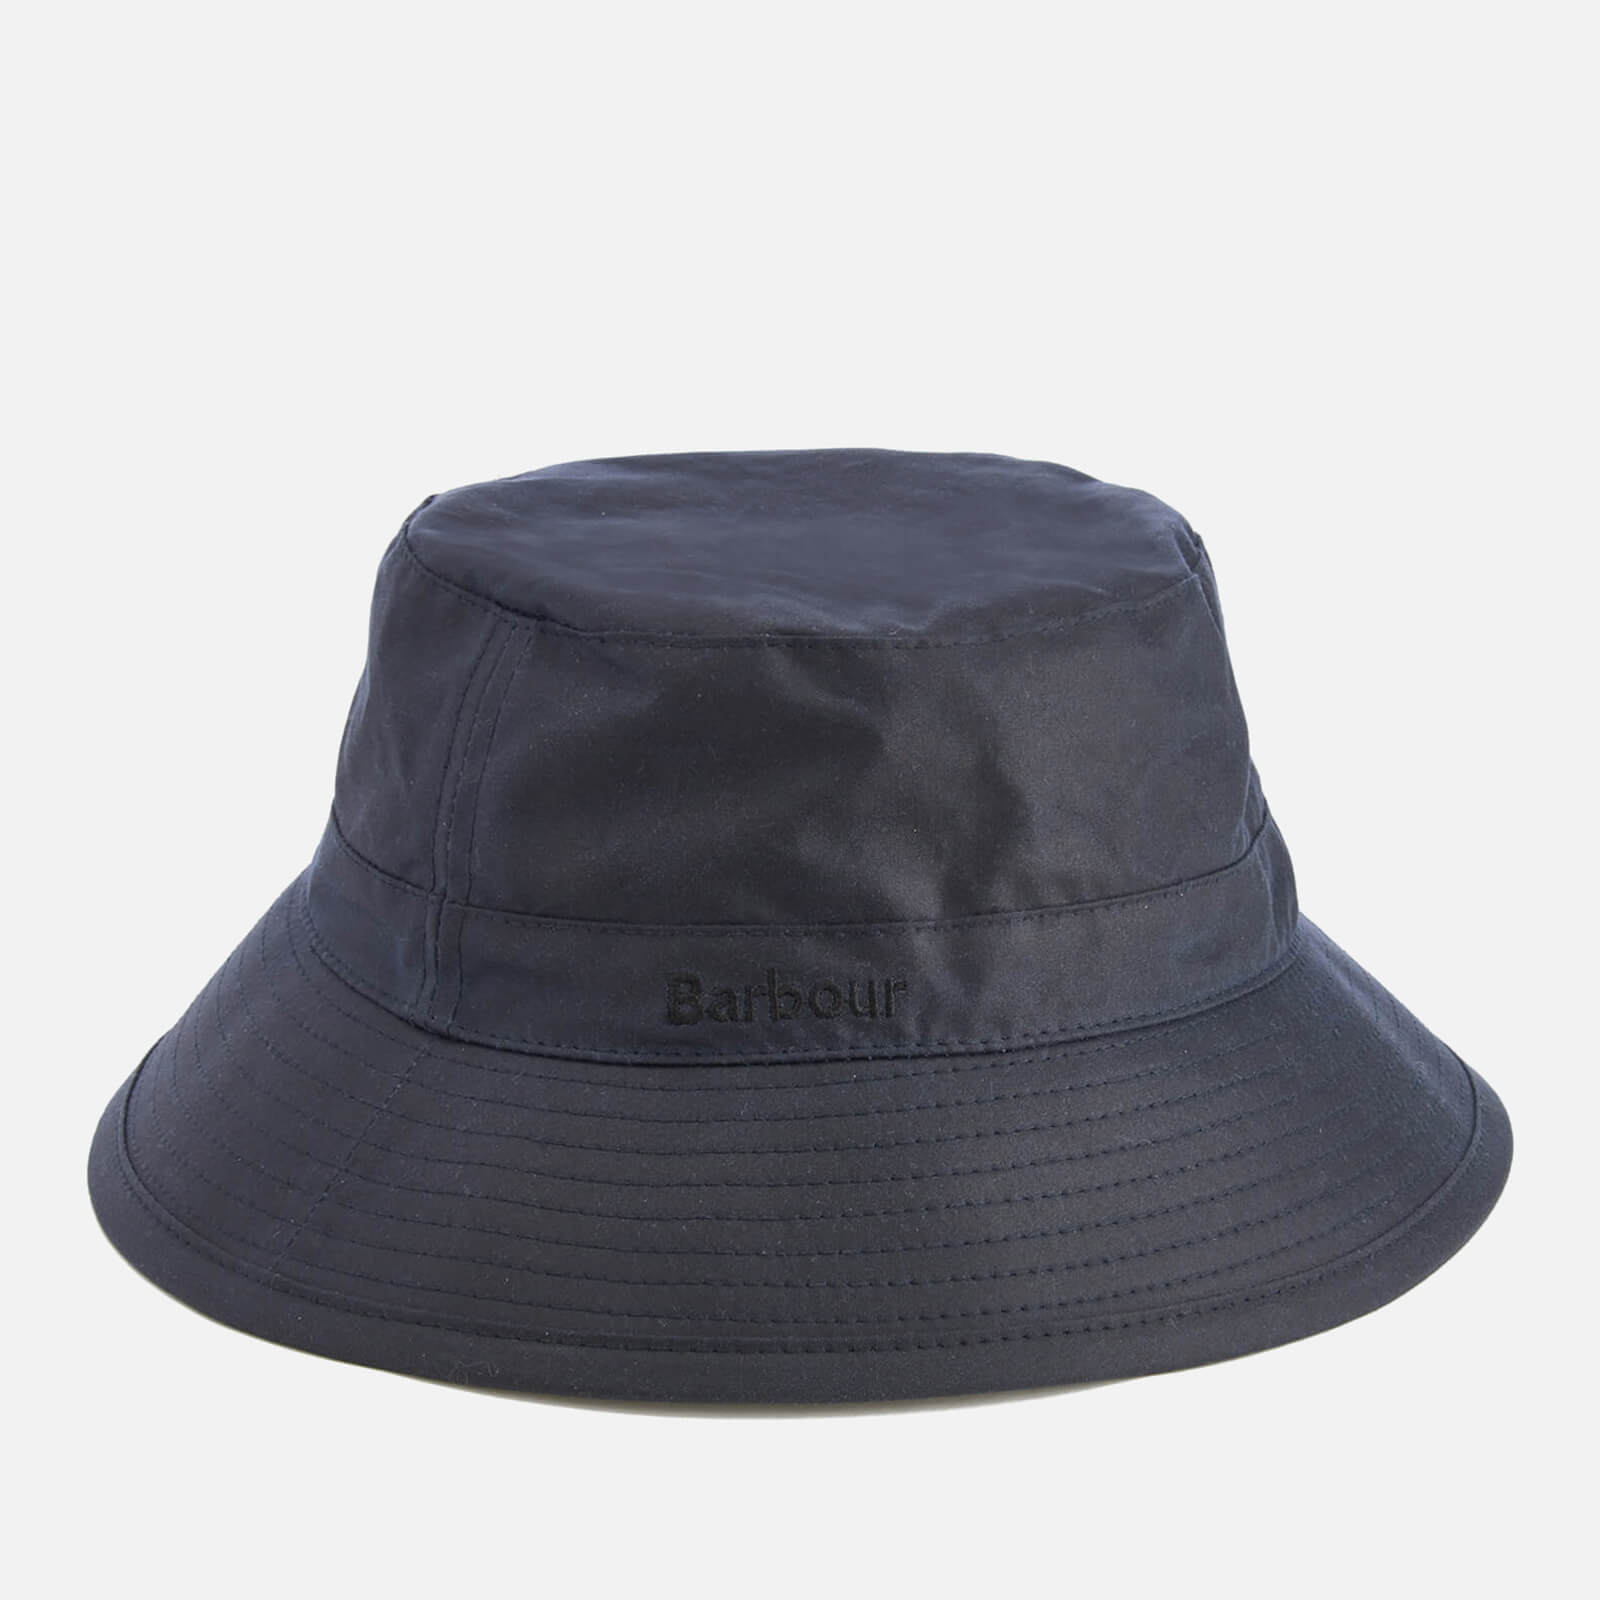 b5f217b635797 Barbour Men s Wax Sports Hat - Navy - Free UK Delivery over £50